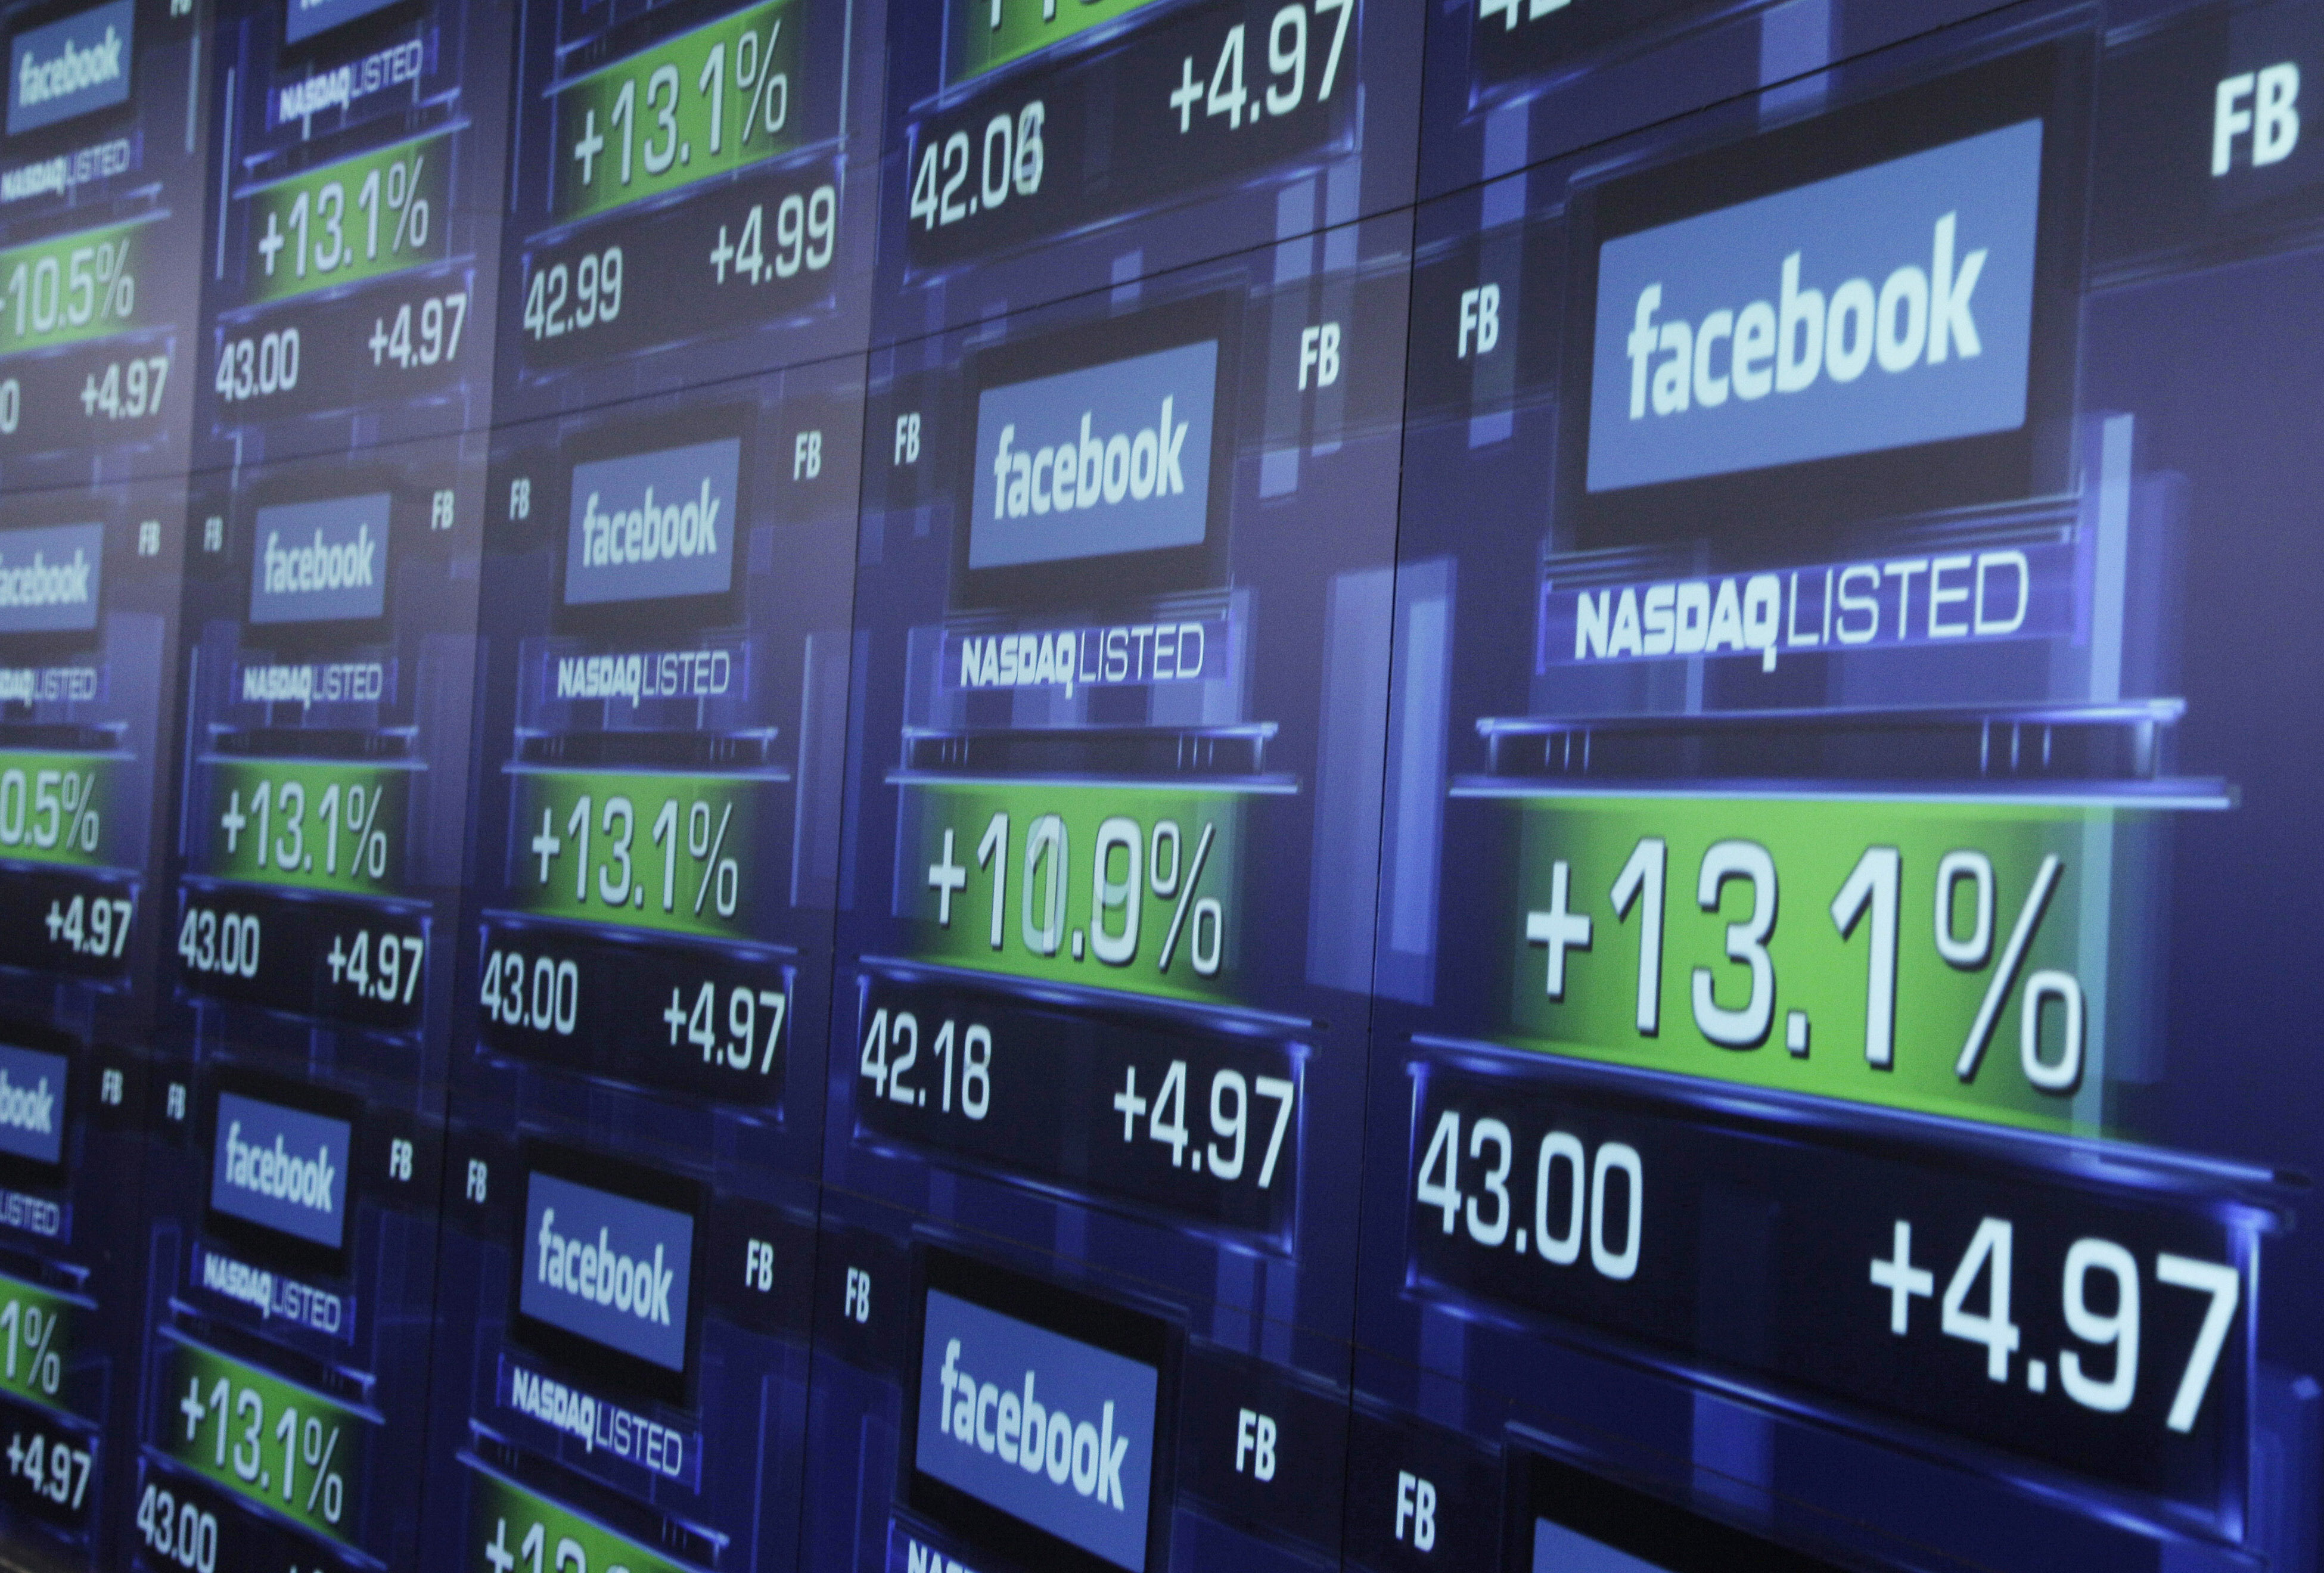 Facebook stock free stock Facebook stock - ClipartFest free stock